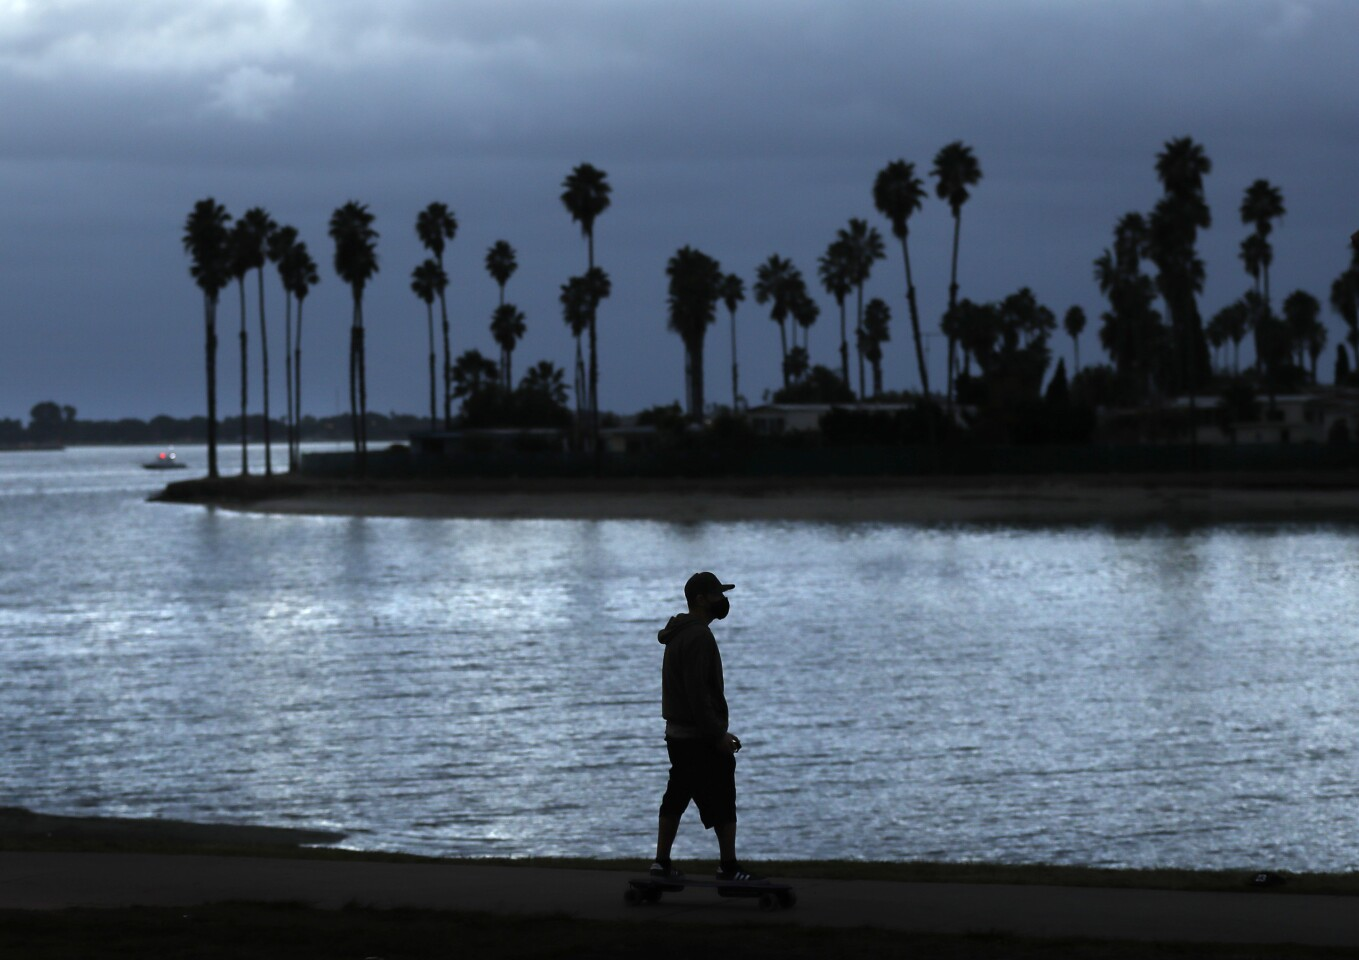 A man, wearing a mask, rides a skateboard in Mission Bay Park near De Anza Cove as the sun sets.